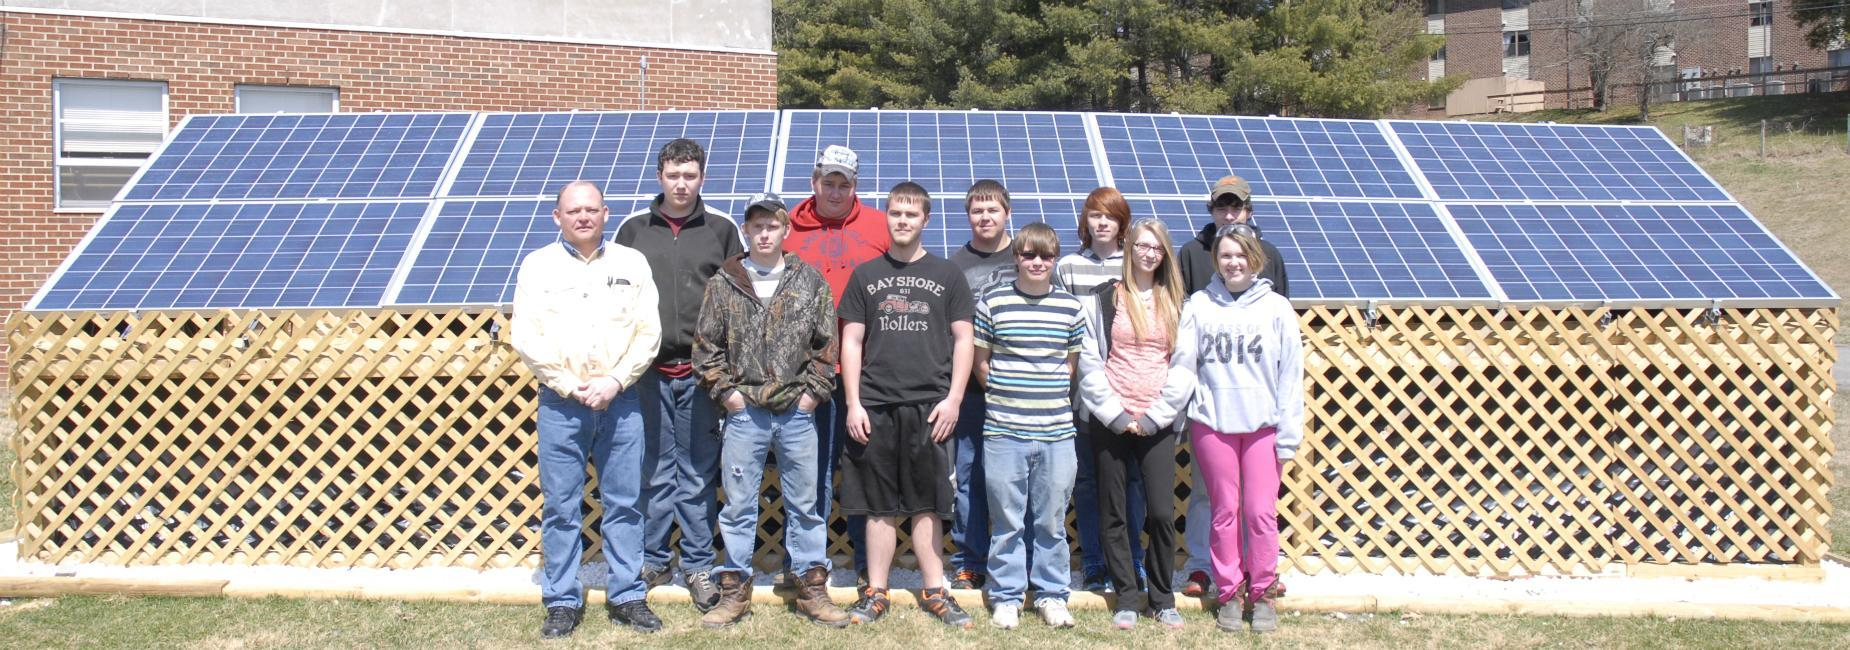 Electronics/electricity students Smyth Career & Technology Center pose in front of the school's solar array.